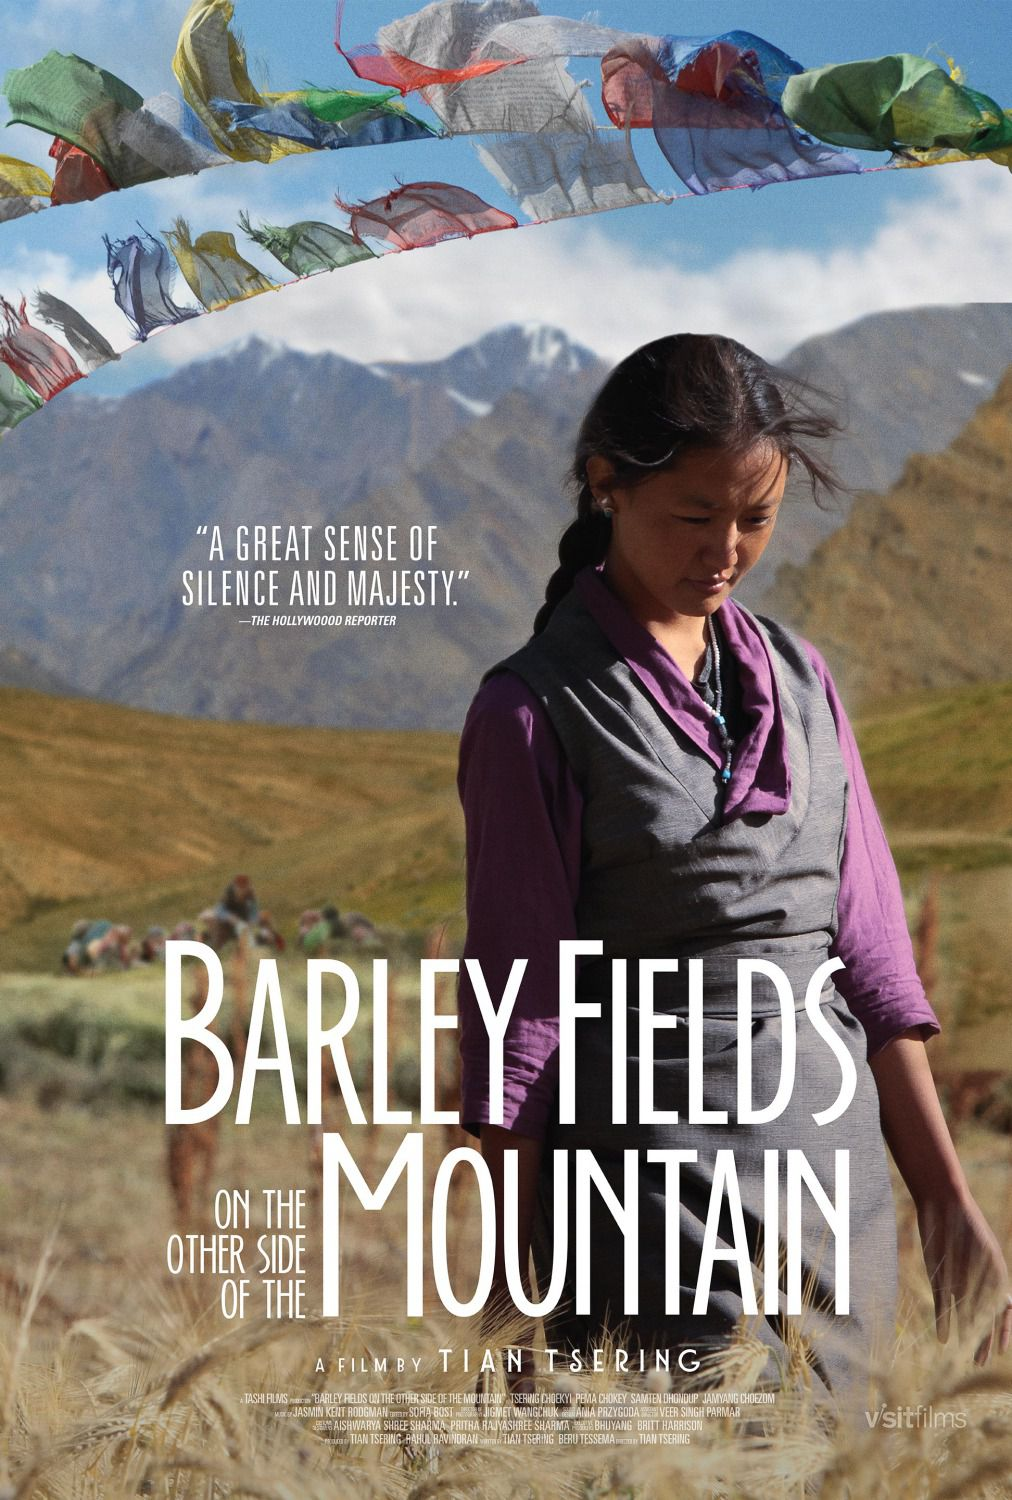 Barley Fields on the other side of the Mountain - film poster 2018